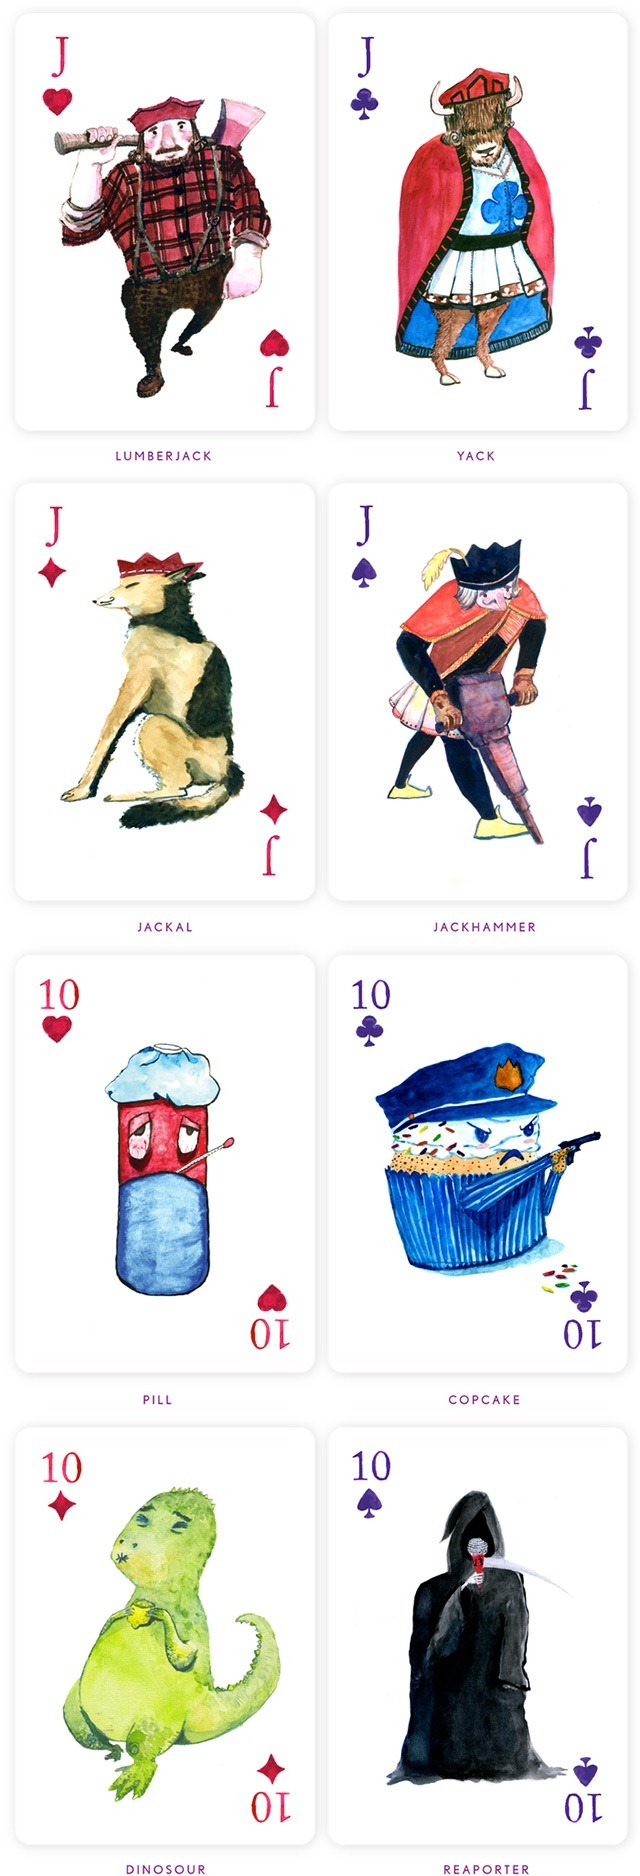 Punniest-Deck-of-Playing-Cards-by-by-Alberto-Rodriguez